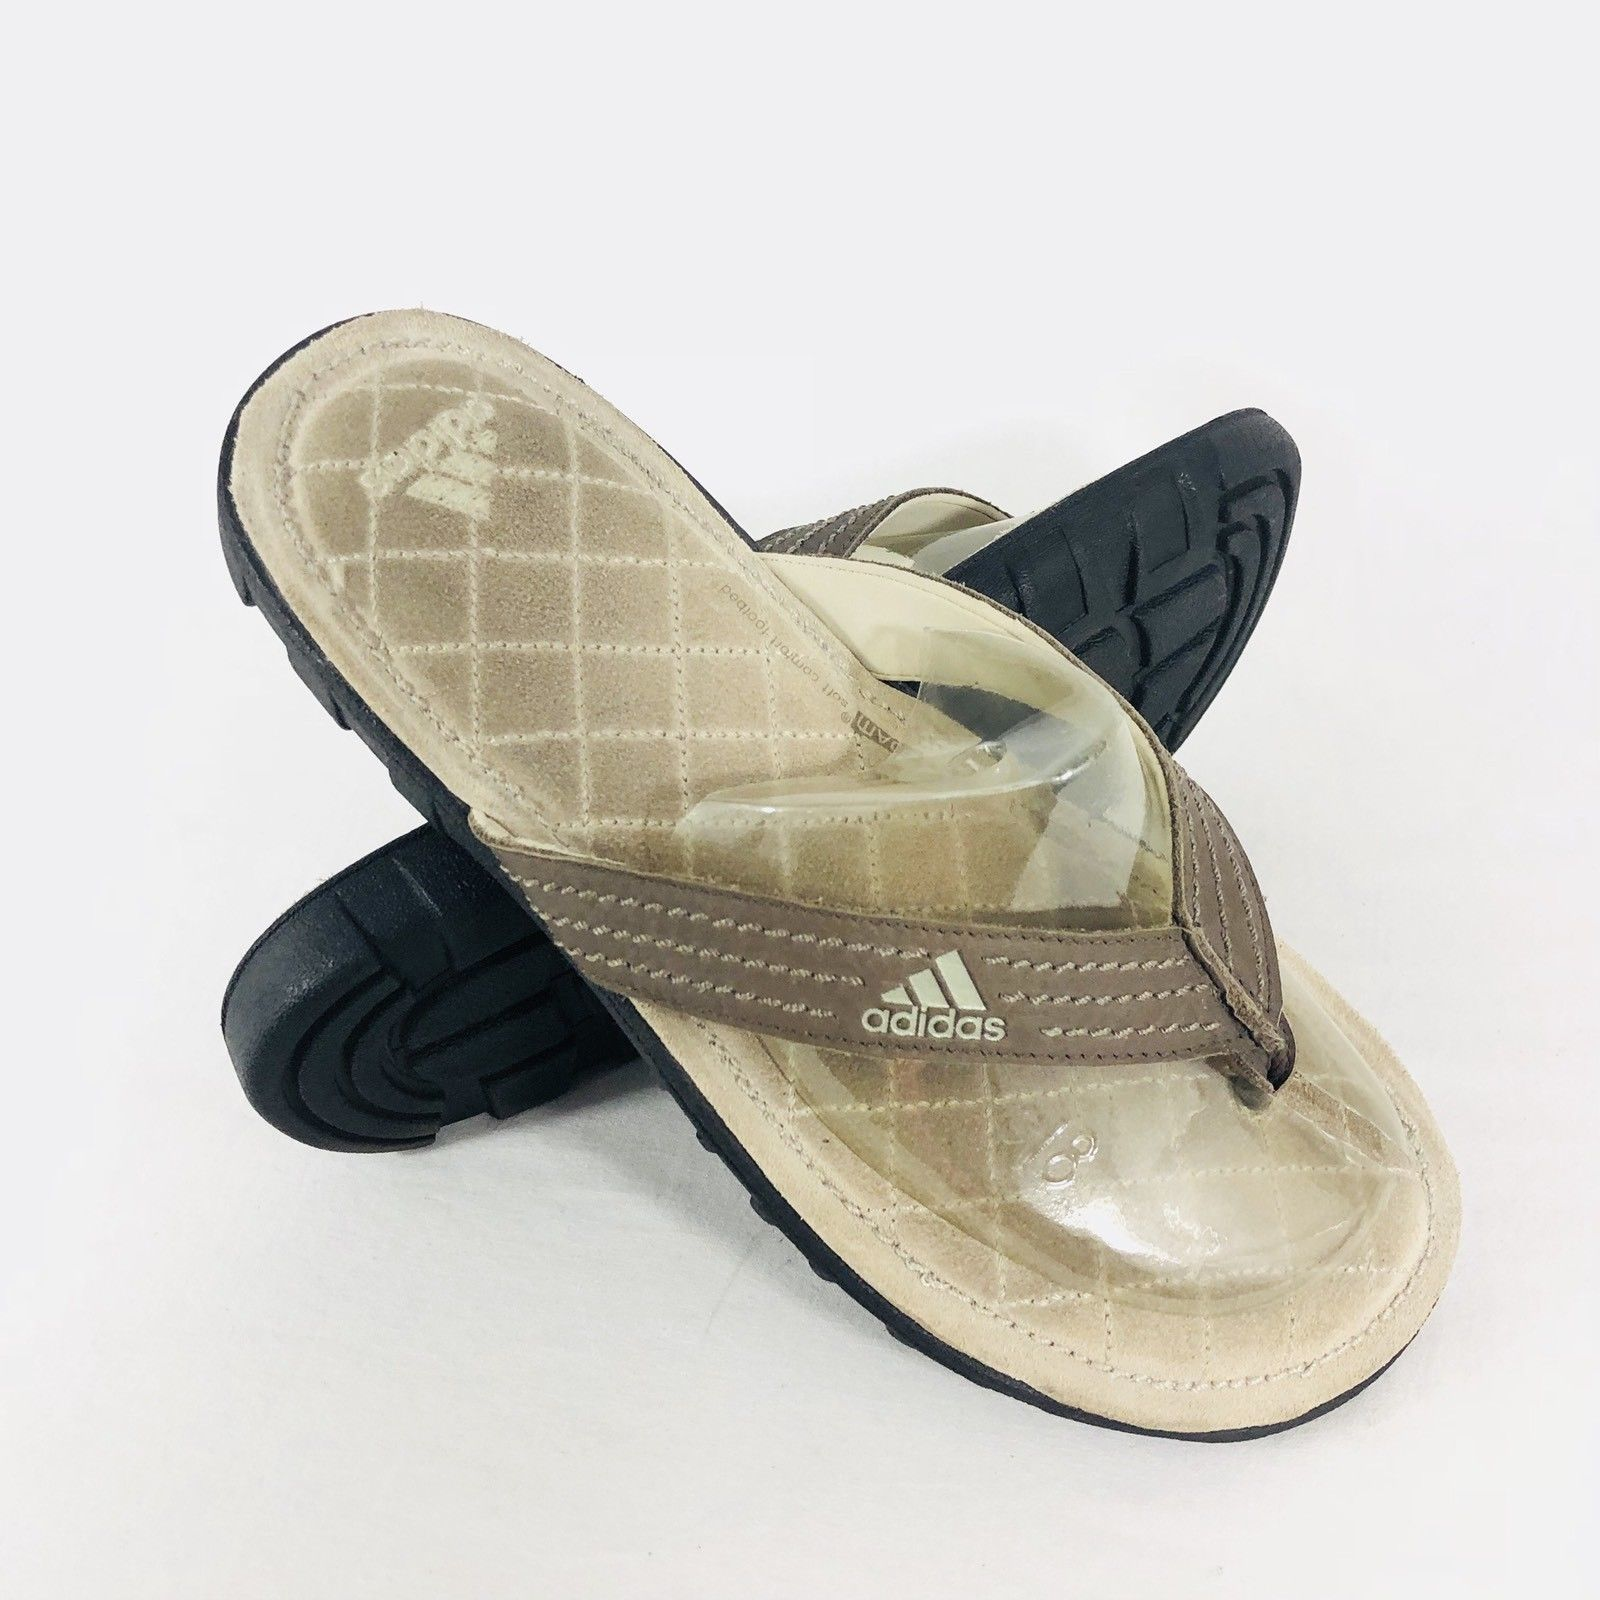 7bb195332 S l1600. S l1600. Adidas Mens Brown Tan Suede Fit FOAM Soft Comfort Footbed Flip  Flop Sandals Sz ...